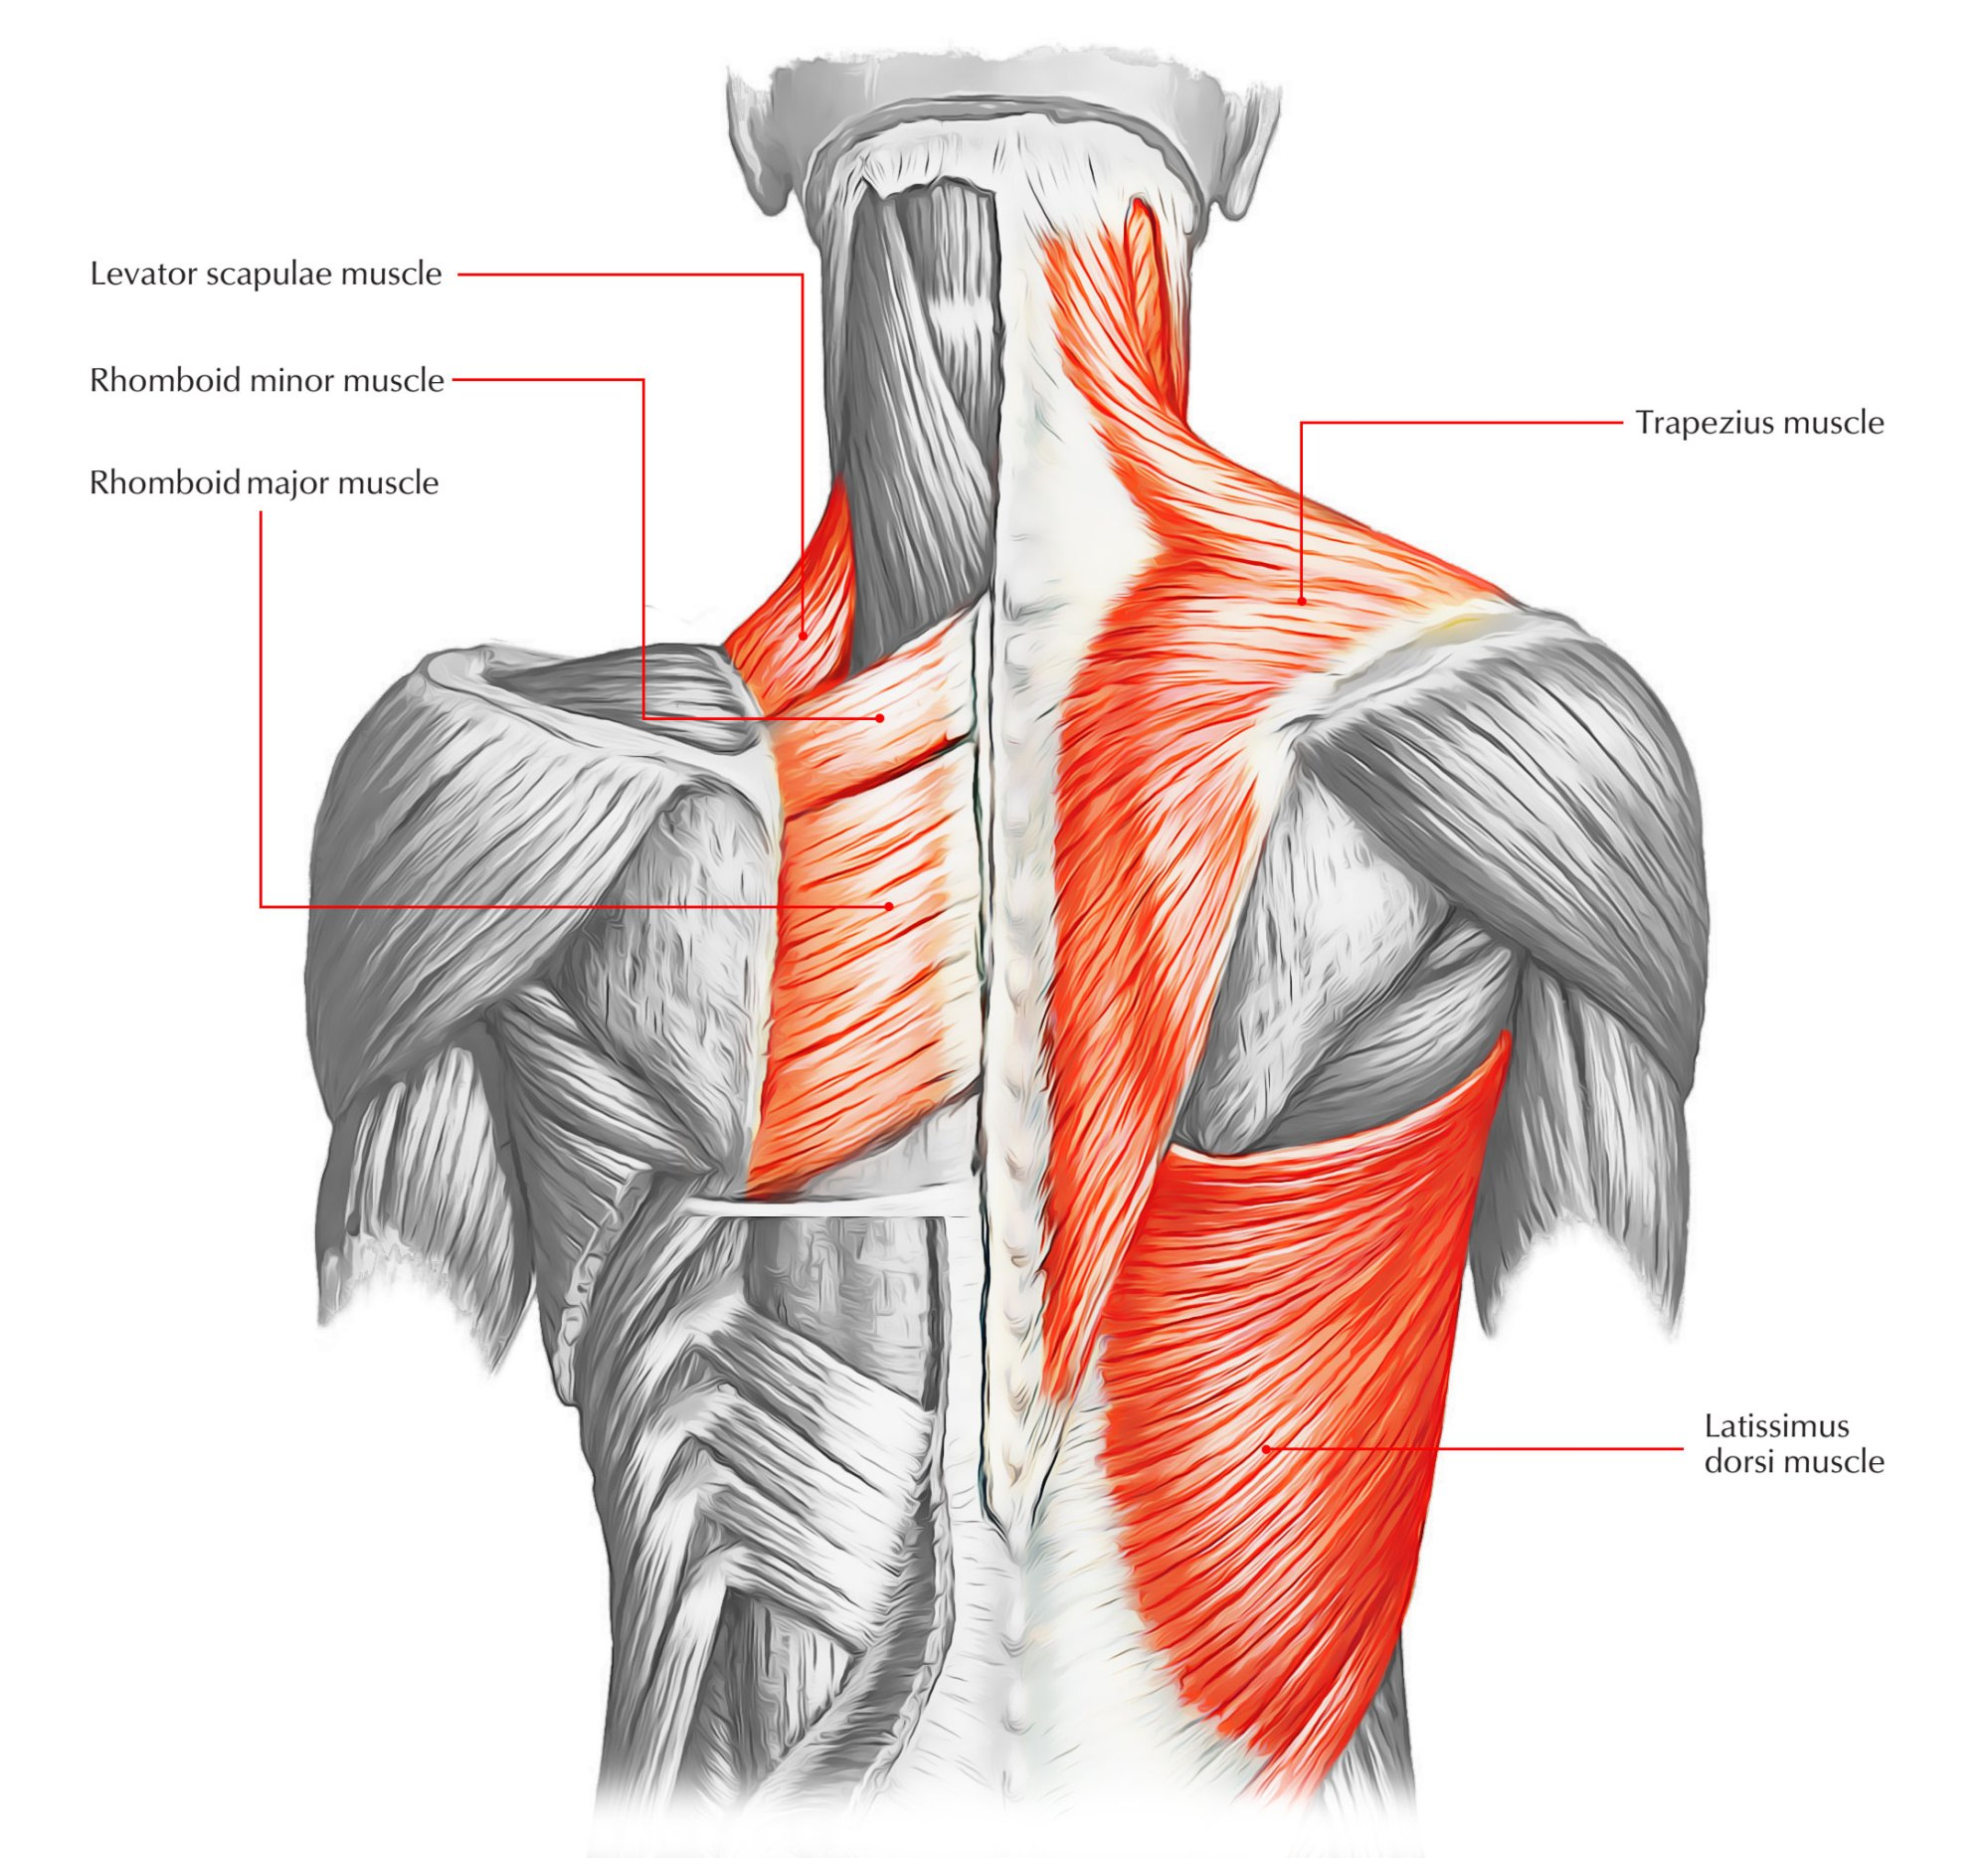 hight resolution of back muscles 28 major muscles of the back earth s lab lower back diagram muscles back diagram muscles